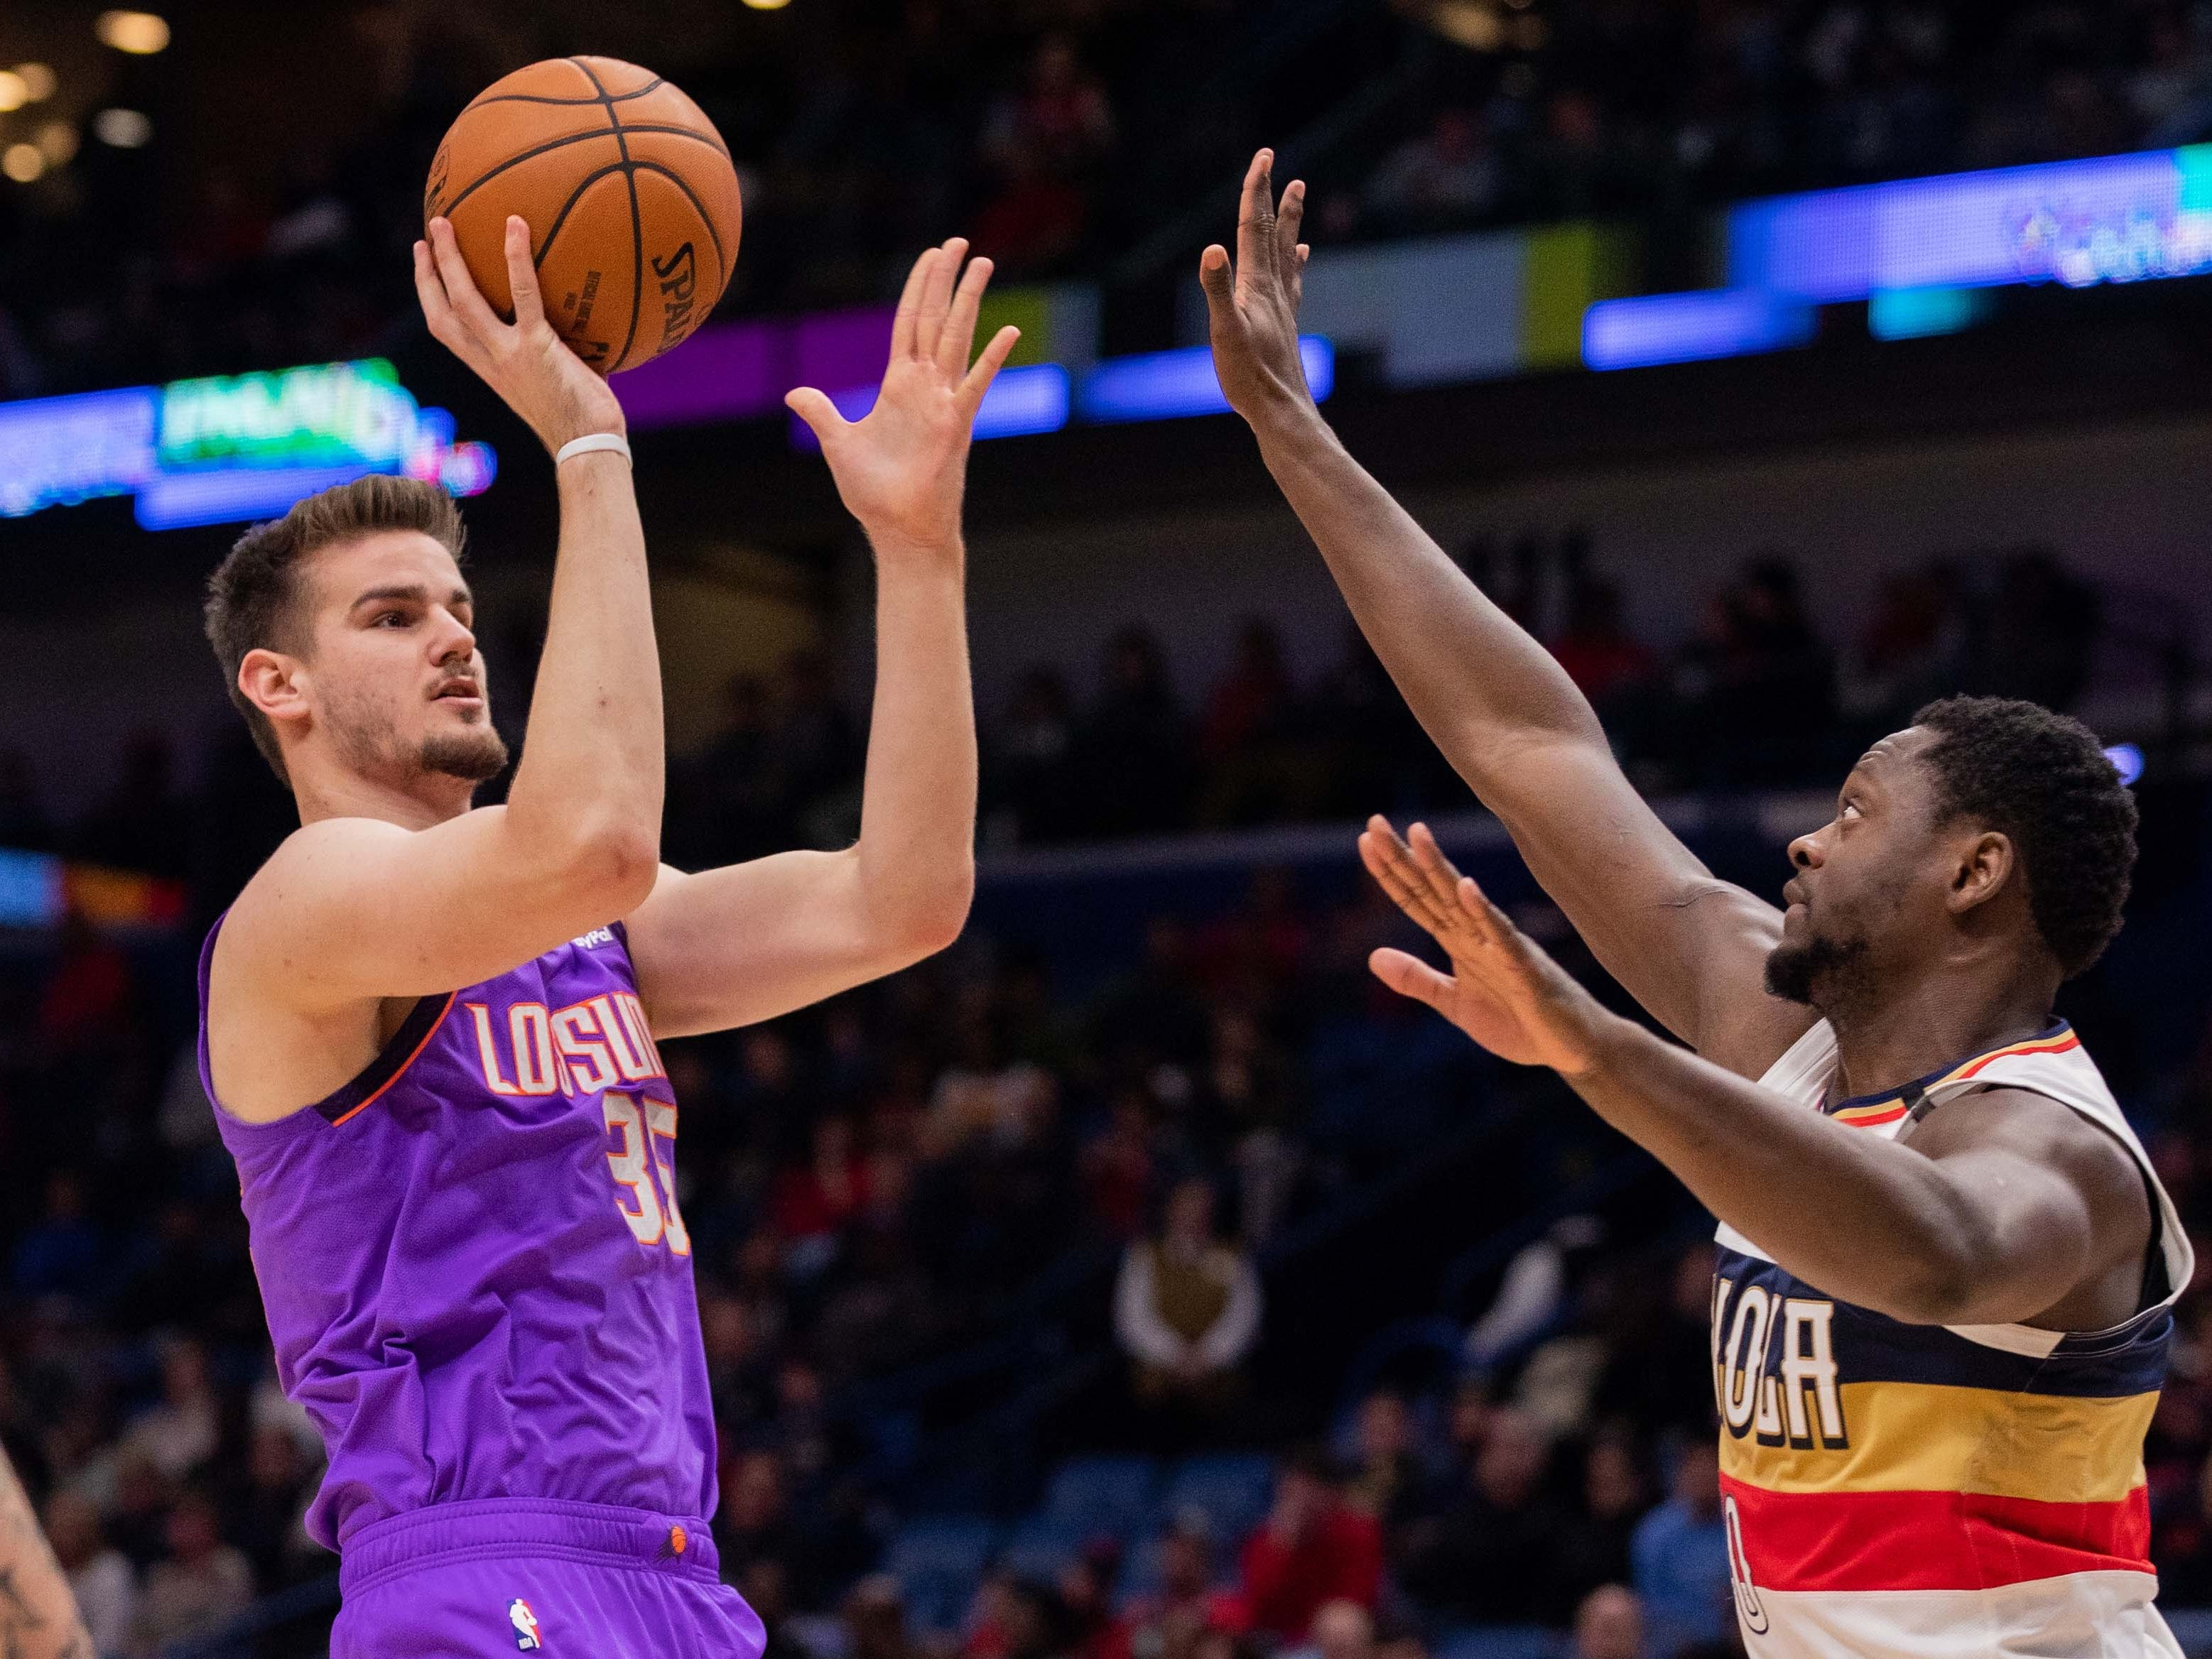 Mar 16, 2019; New Orleans, LA, USA; Phoenix Suns forward Dragan Bender (35) shoots a jump shot against New Orleans Pelicans center Julius Randle (30) during the first half at Smoothie King Center.